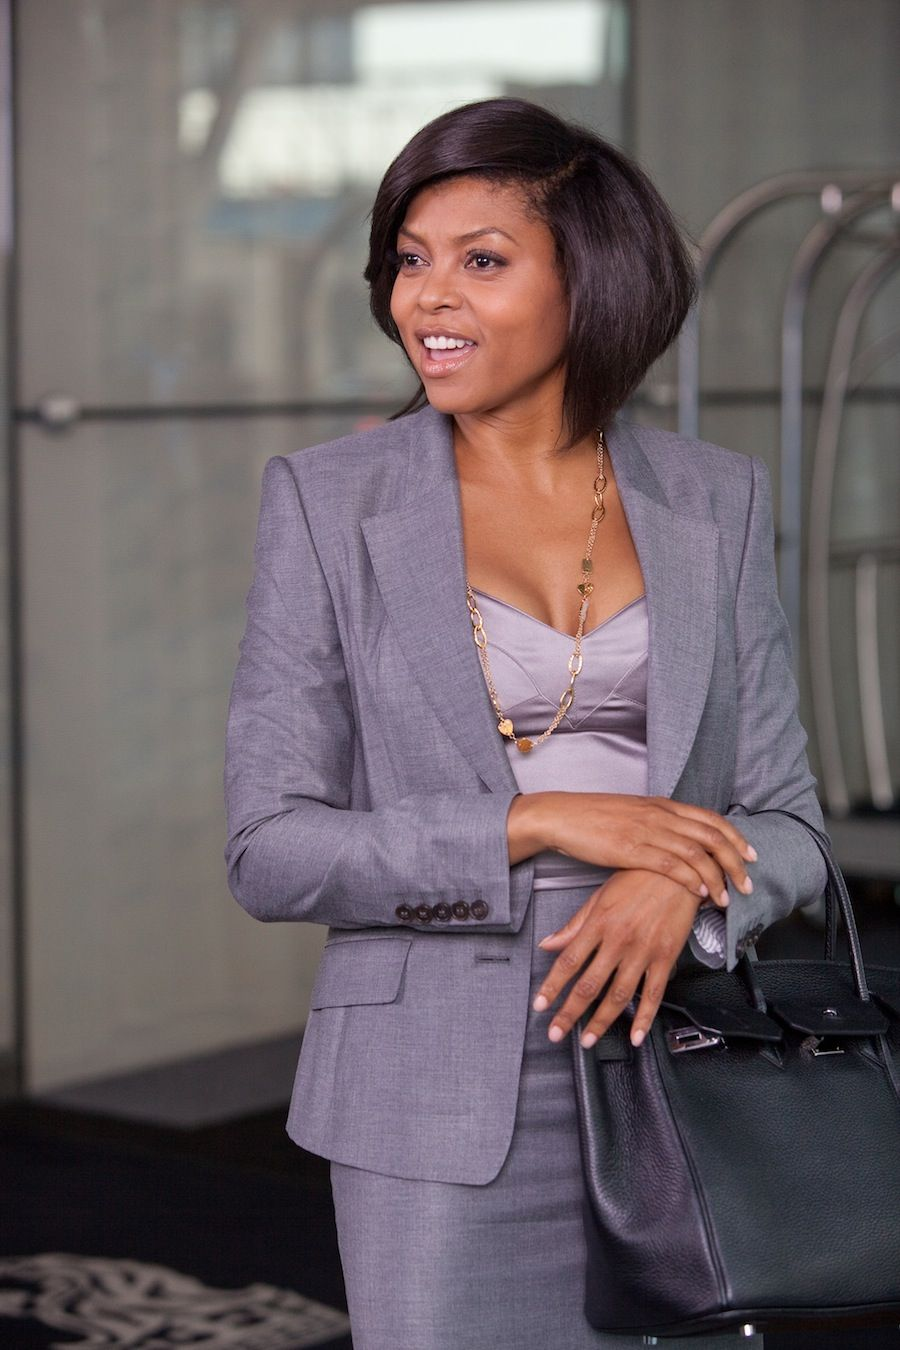 taraji p. henson! love that she plays the youngest ceo in the